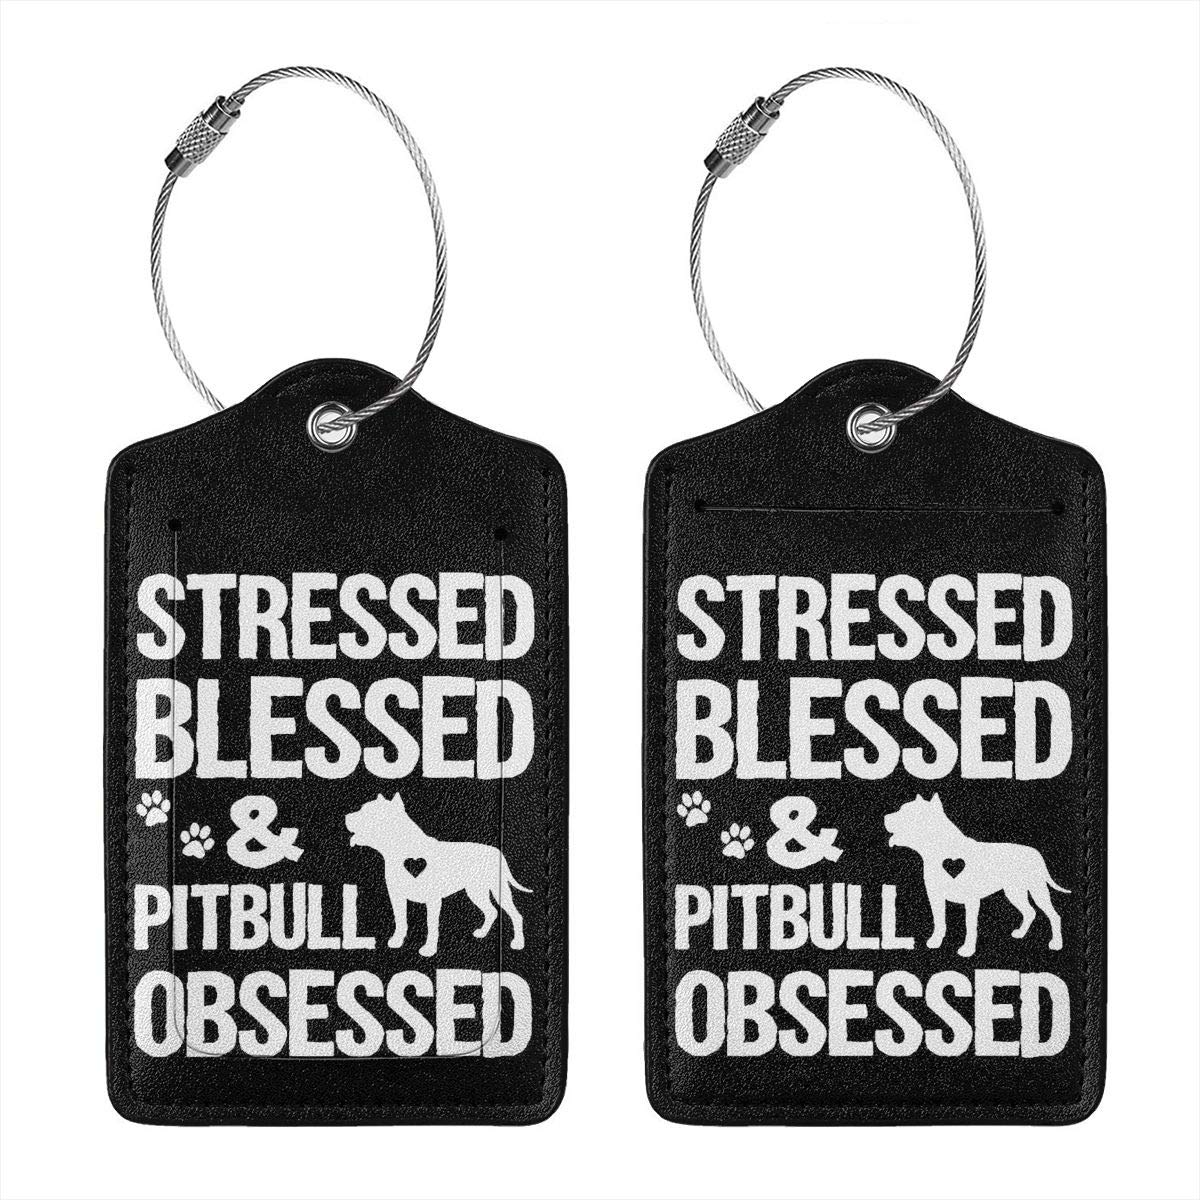 Funny Pitbull Leather Luggage Tags Suitcase Tag Travel Bag Labels With Privacy Cover For Men Women 2 Pack 4 Pack